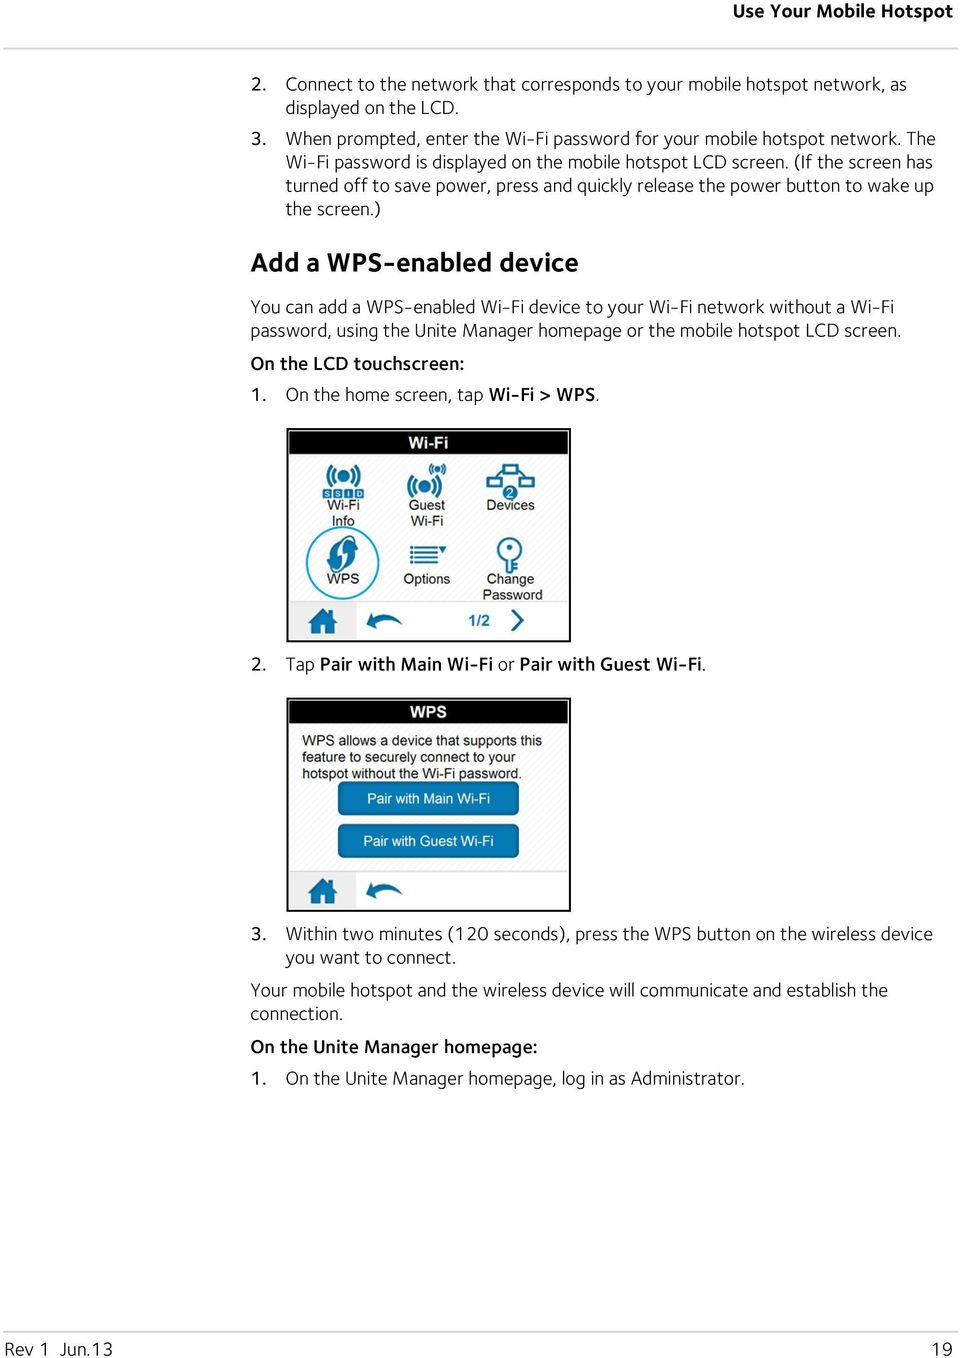 ) Add a WPS-enabled device You can add a WPS-enabled Wi-Fi device to your Wi-Fi network without a Wi-Fi password, using the Unite Manager homepage or the mobile hotspot LCD screen.